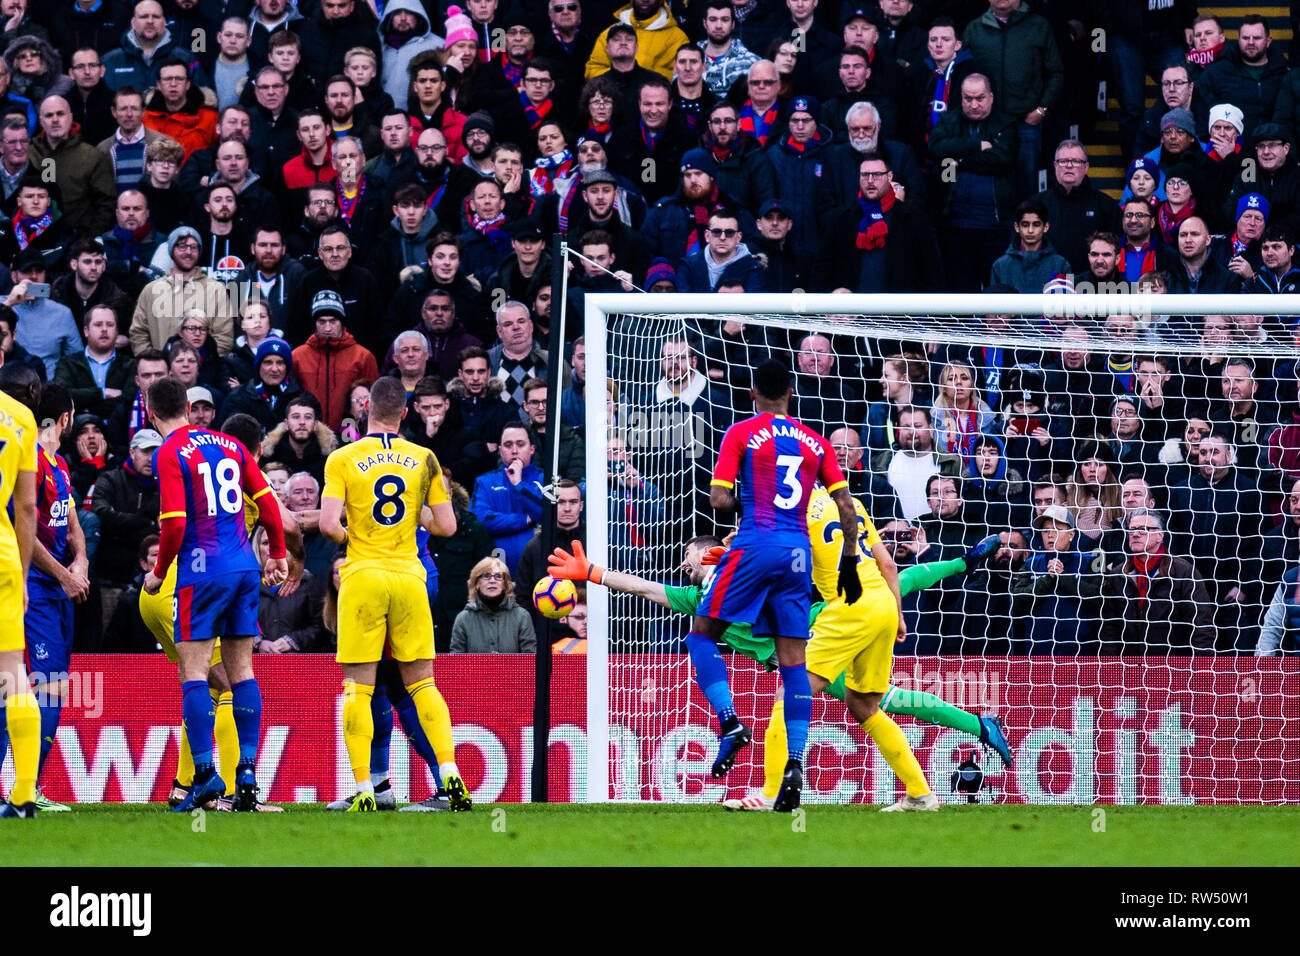 LONDON, ENGLAND - DECEMBER 30: looks on during the Premier League match between Crystal Palace and Chelsea FC at Selhurst Park on December 30, 2018 in London, United Kingdom. (Photo by MB Media/Getty Images) - Stock Image